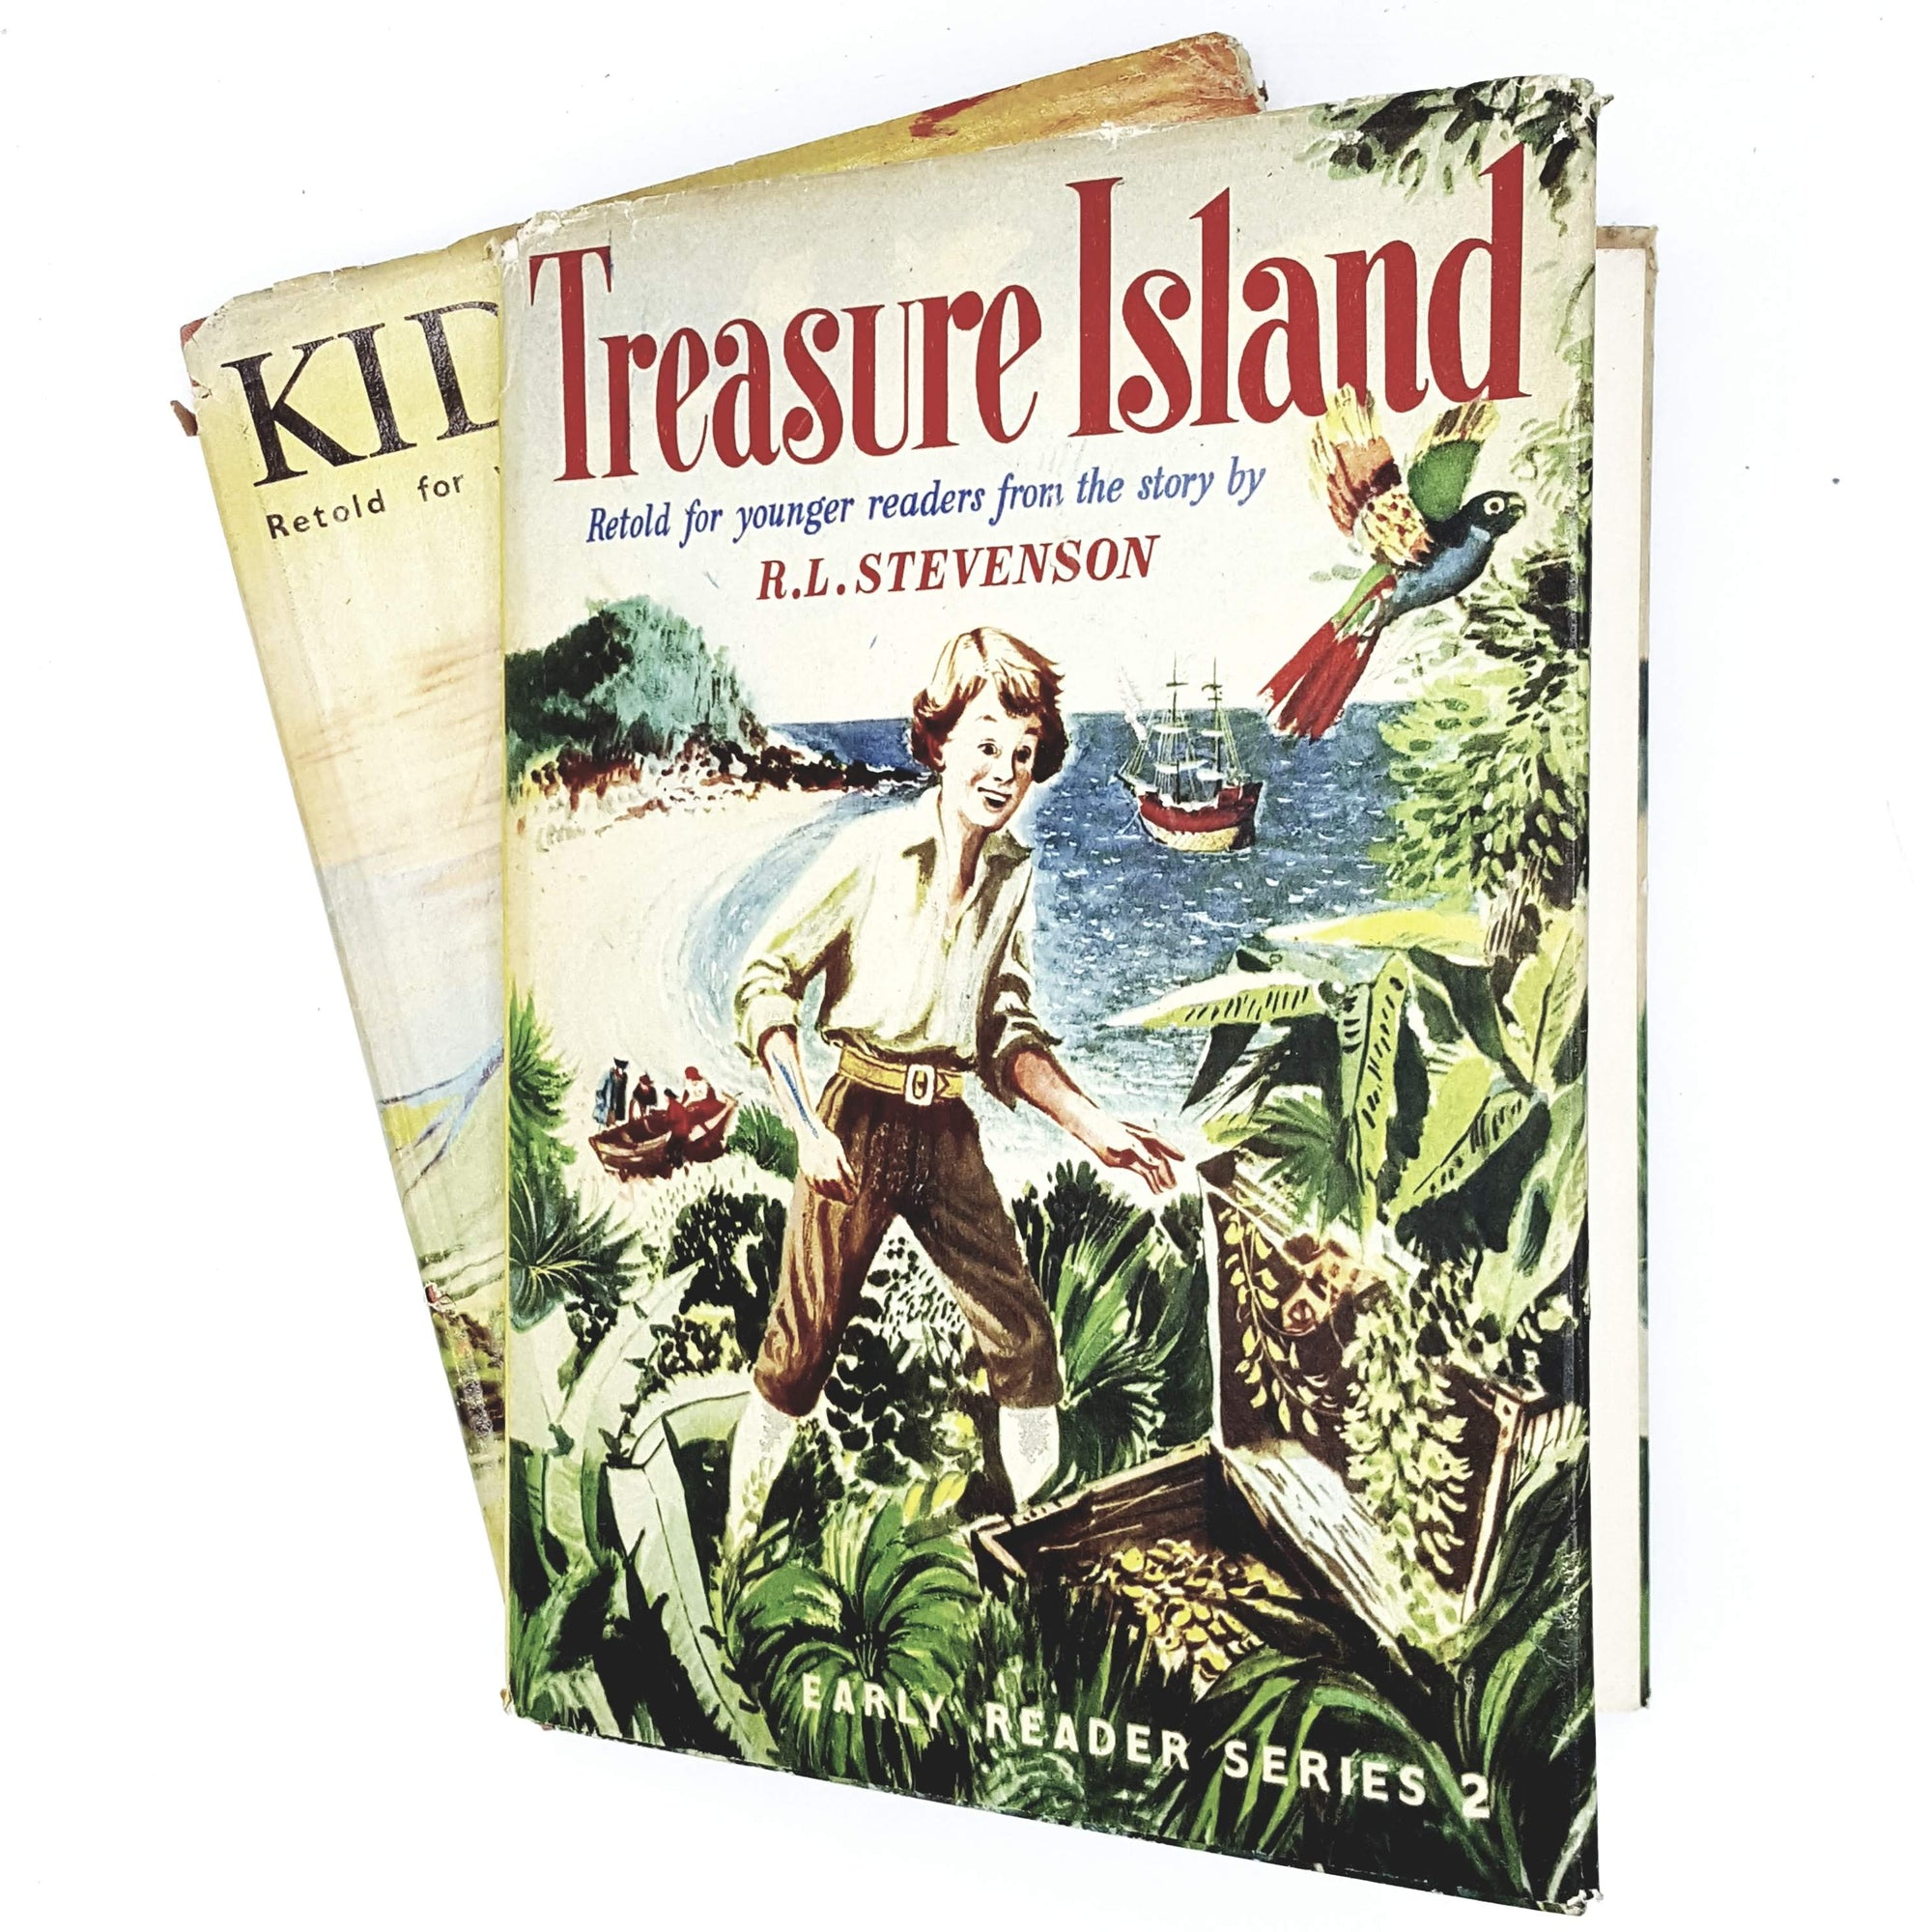 Collection Robert Louis Steveson's Kidnapped and Treasure Island, illustrated